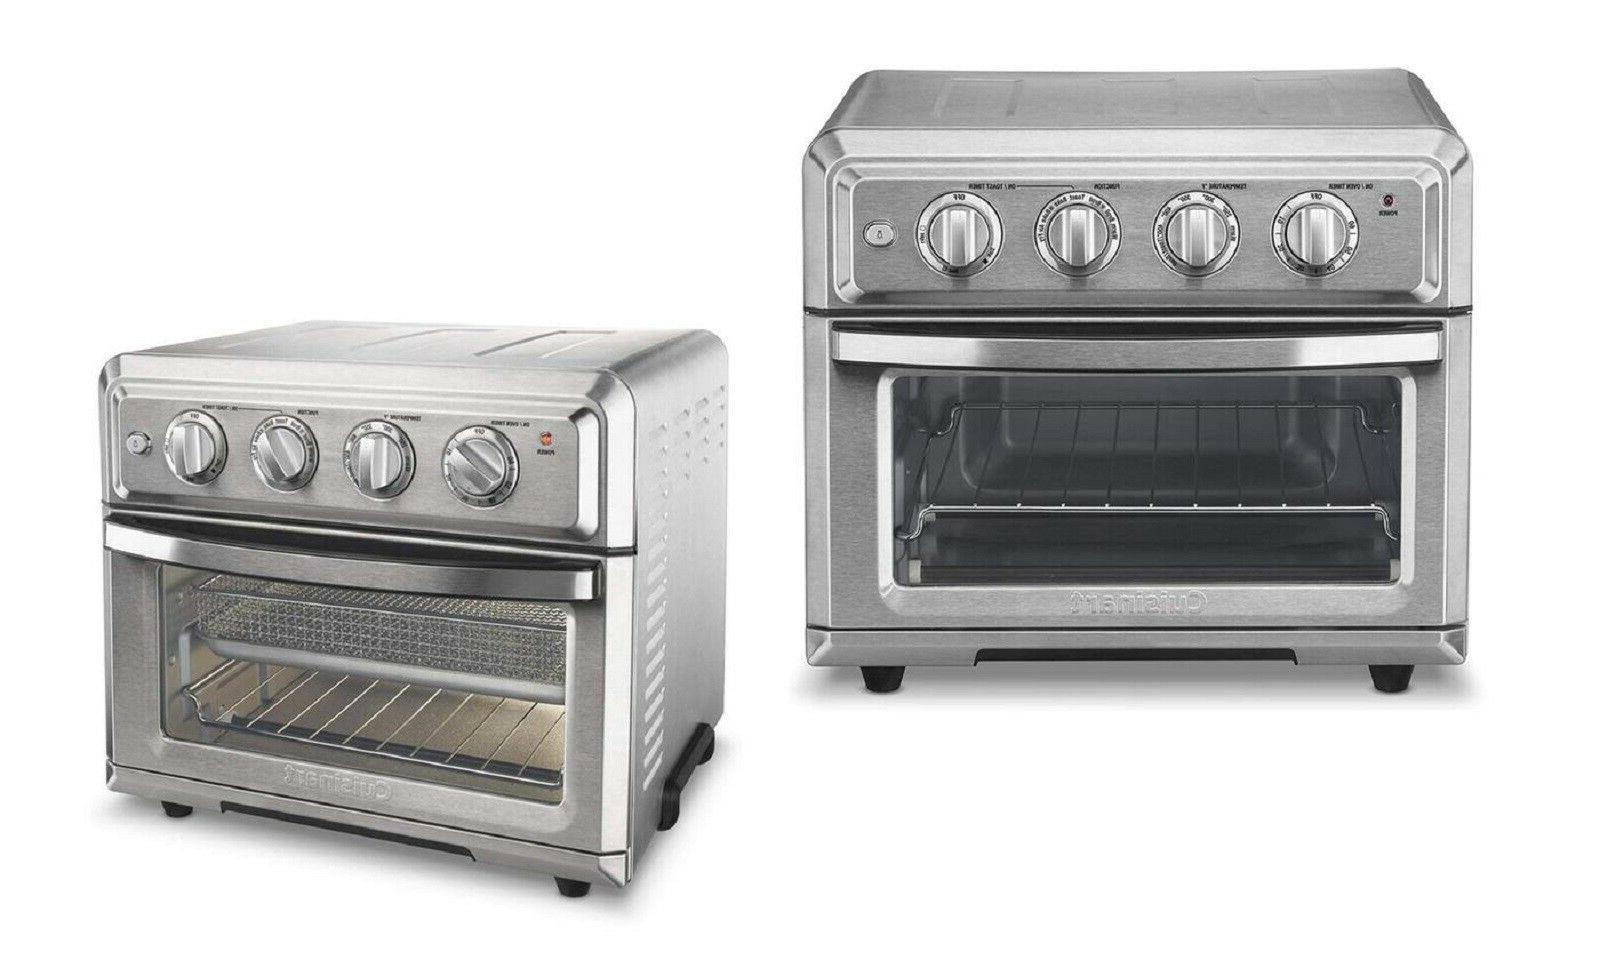 Stainless Air Fryer Toaster Oven BOX!